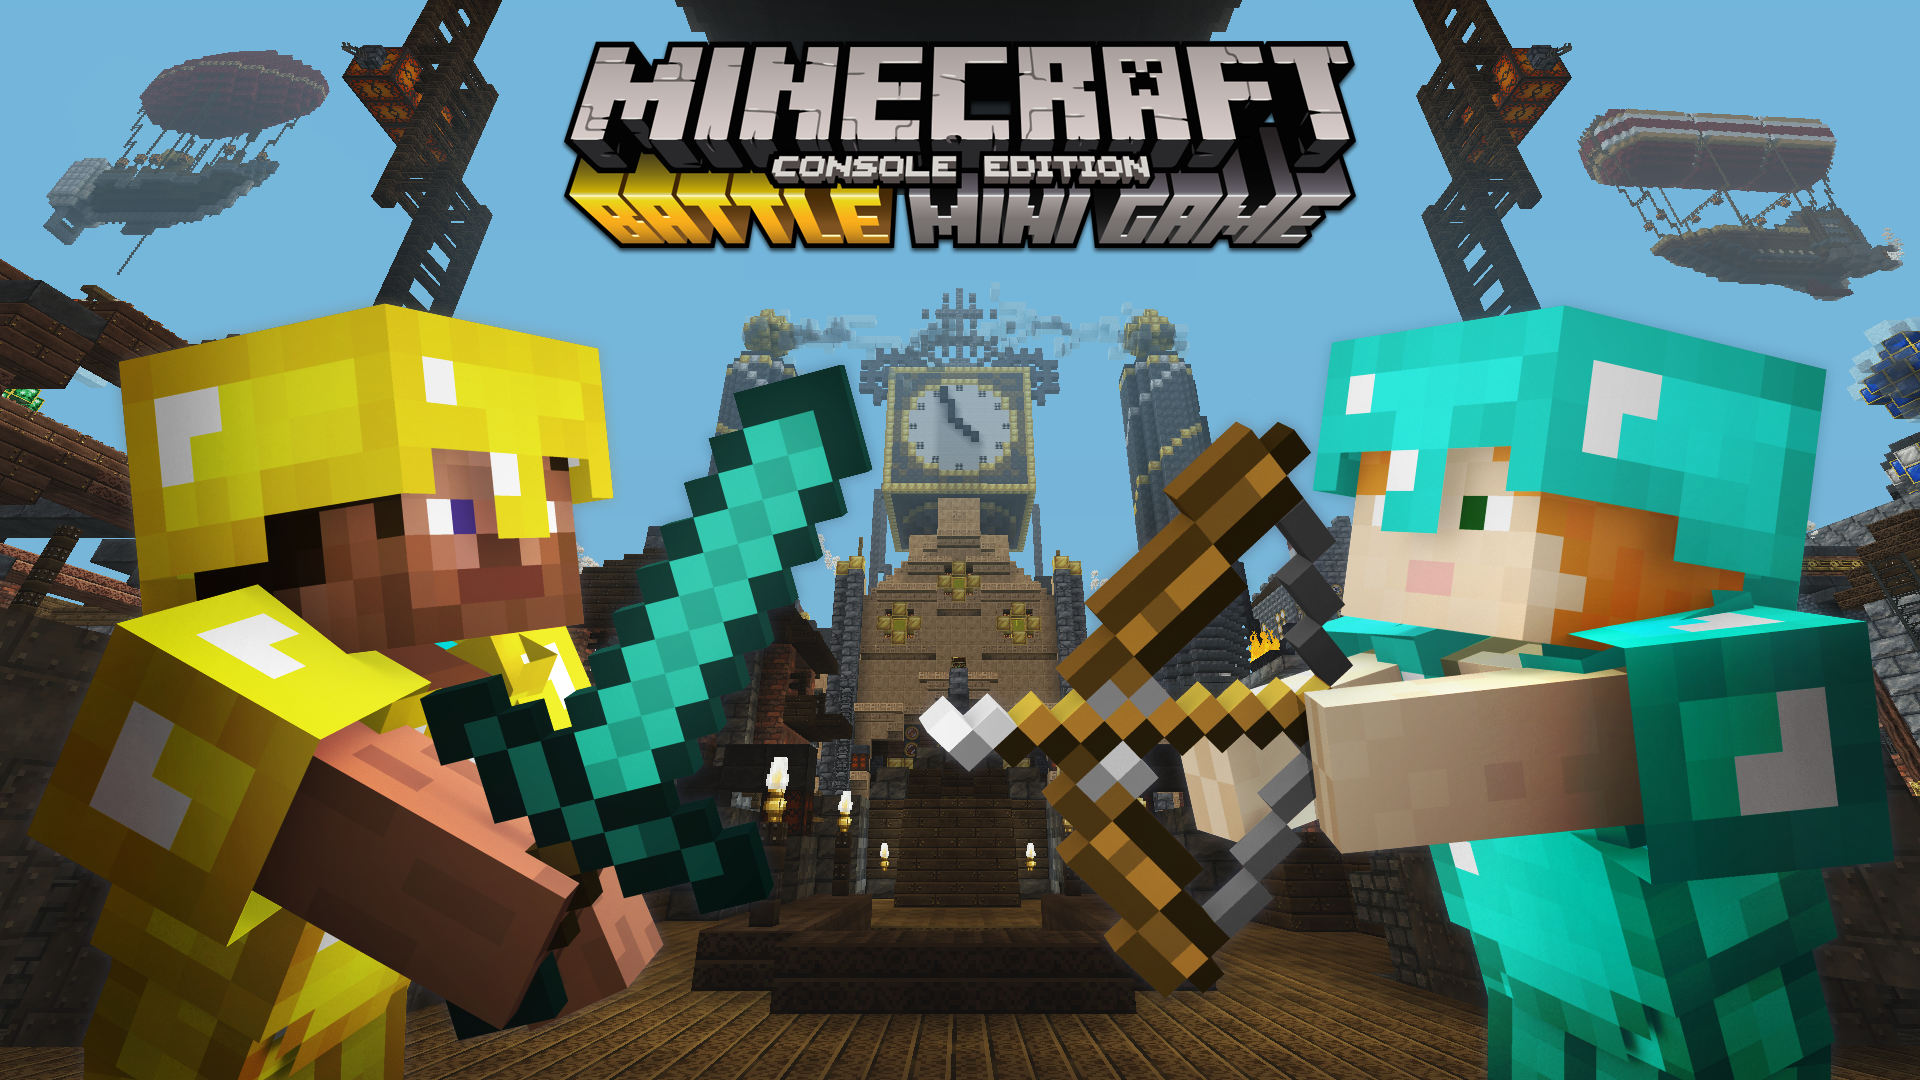 Minecraft Tumble Mini Game Launches Today Playstation Blog Europe